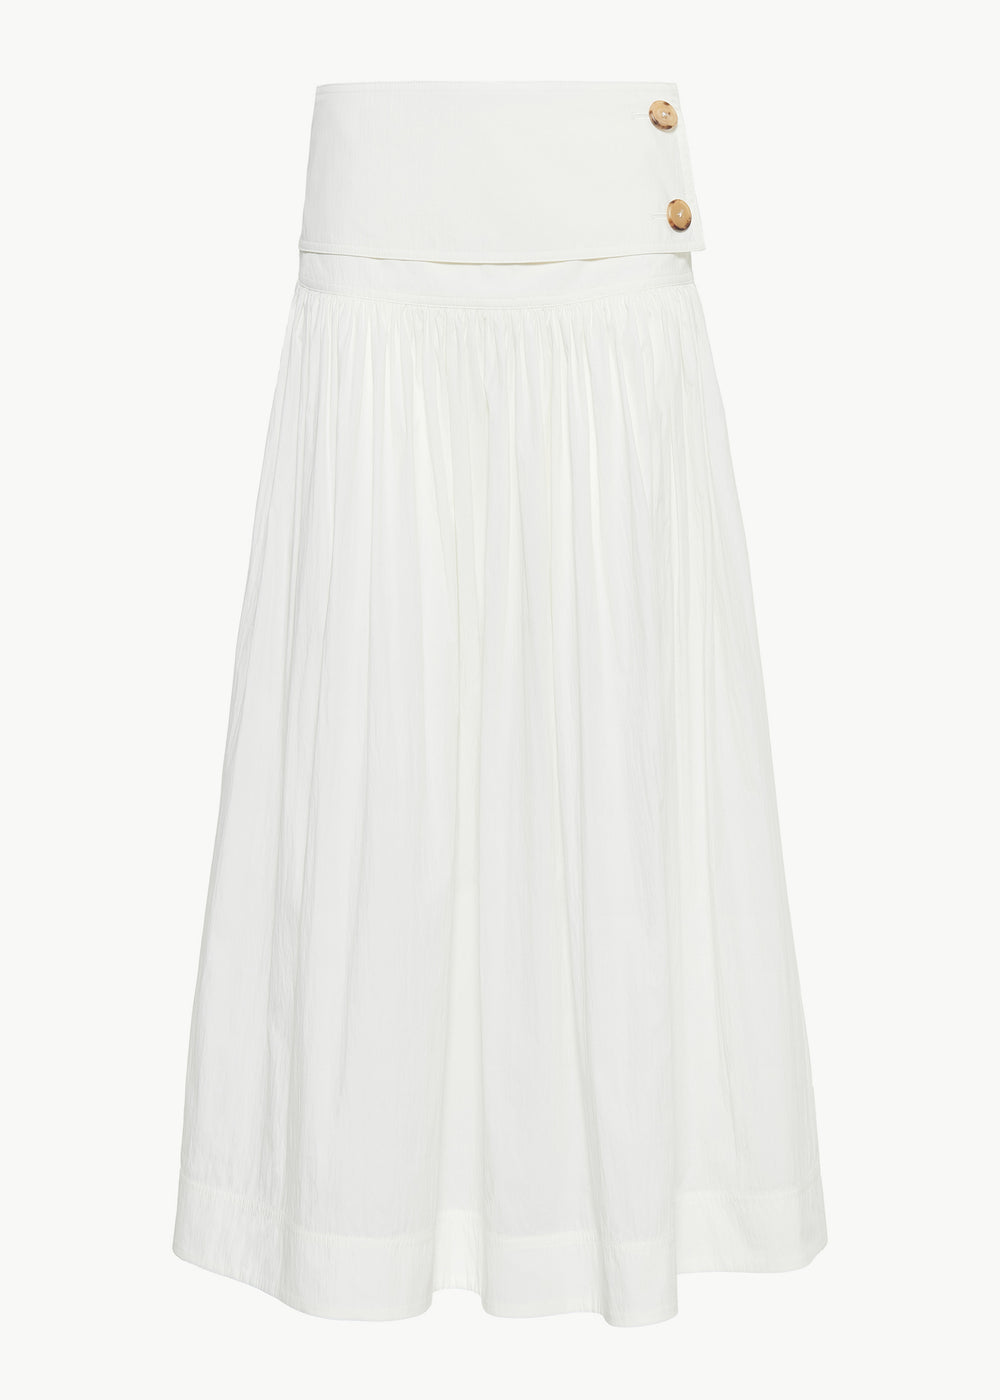 Ruched Midi Skirt in Cotton - White - CO